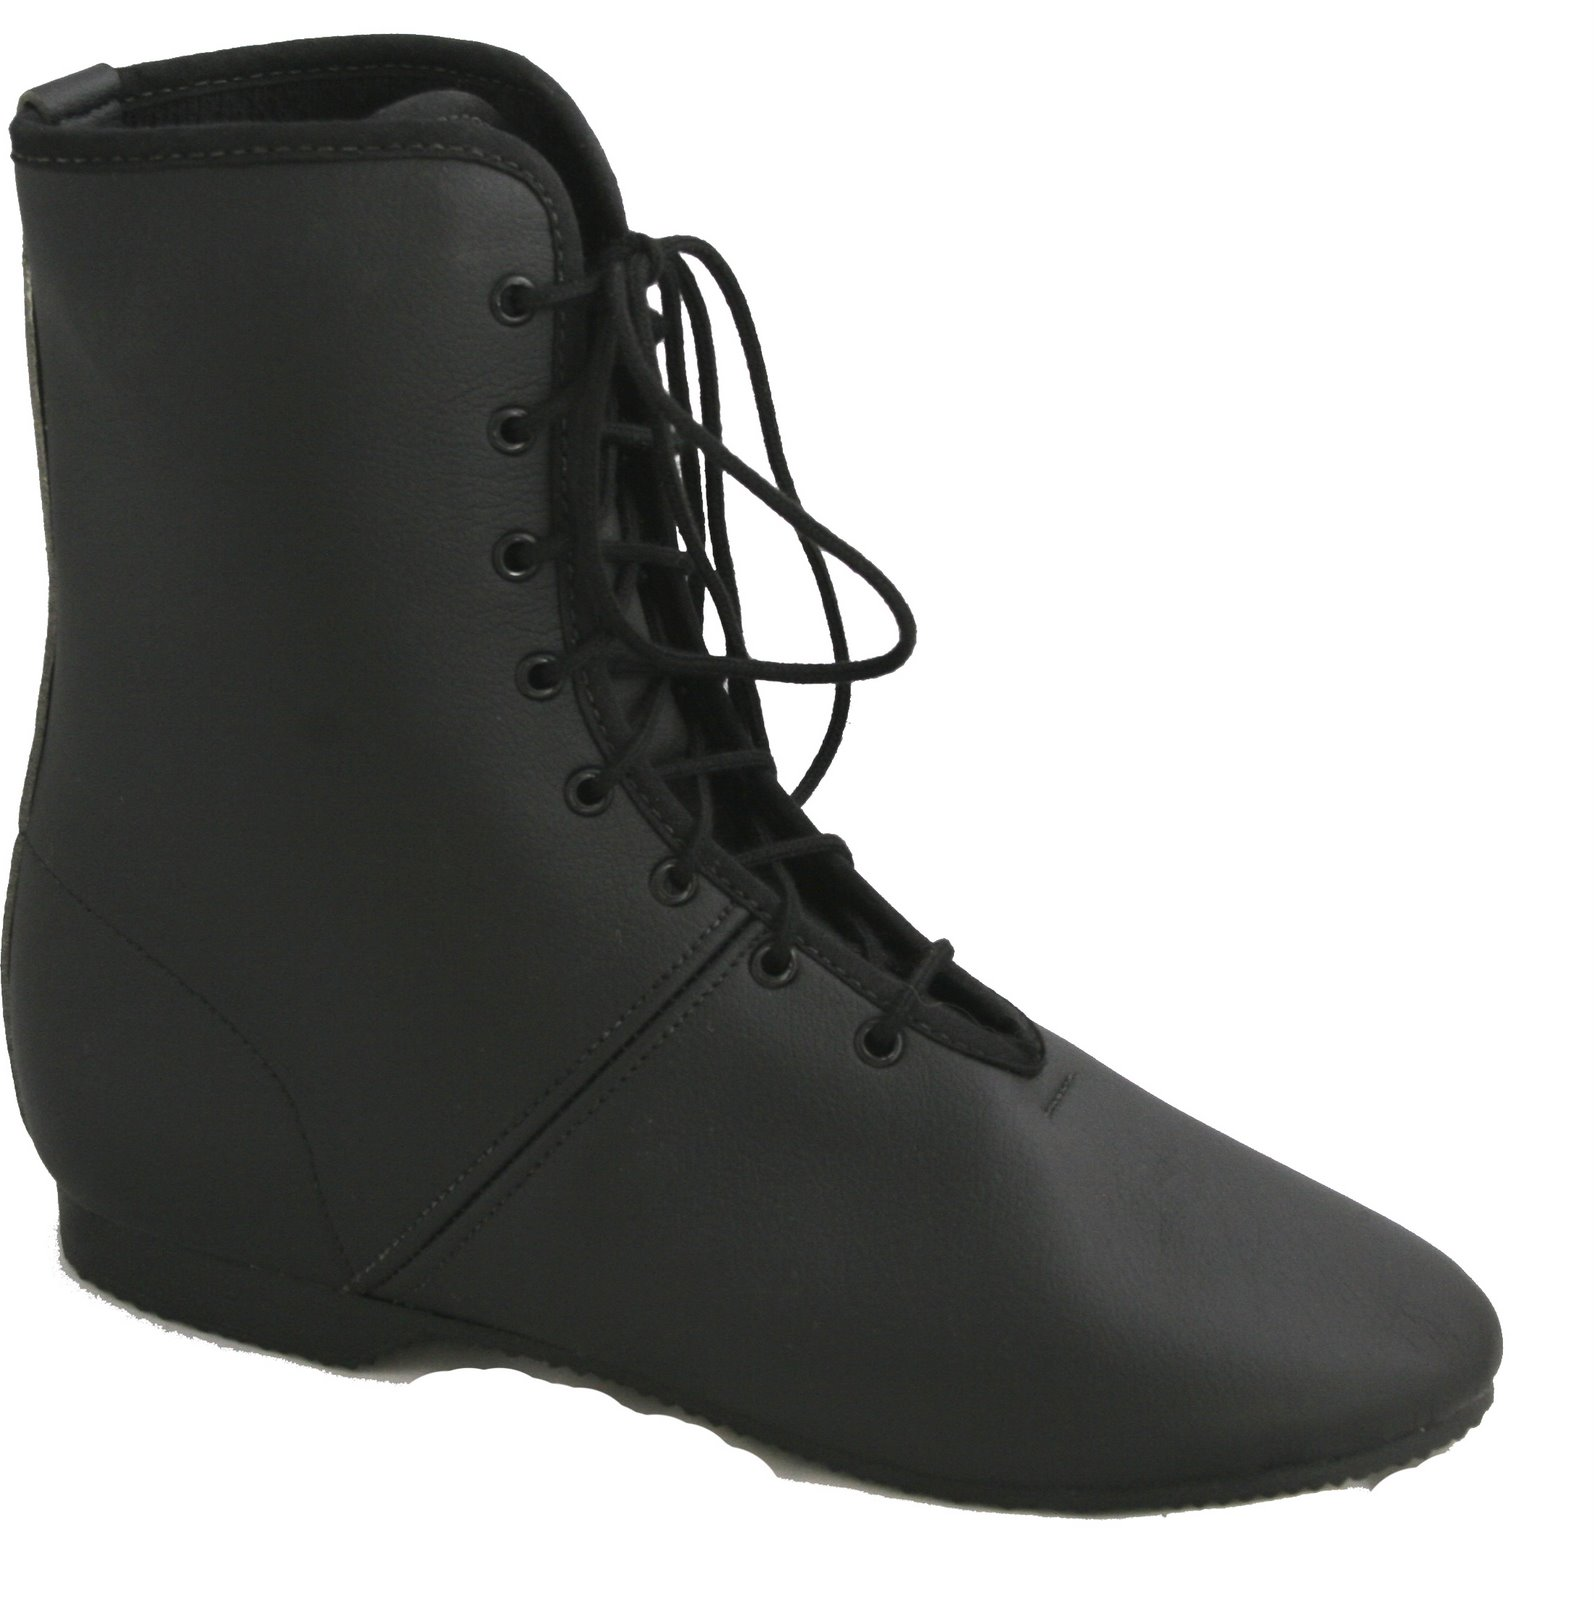 a767d857abfd Footwear    Womens Boots    Ladies Jazz Boot